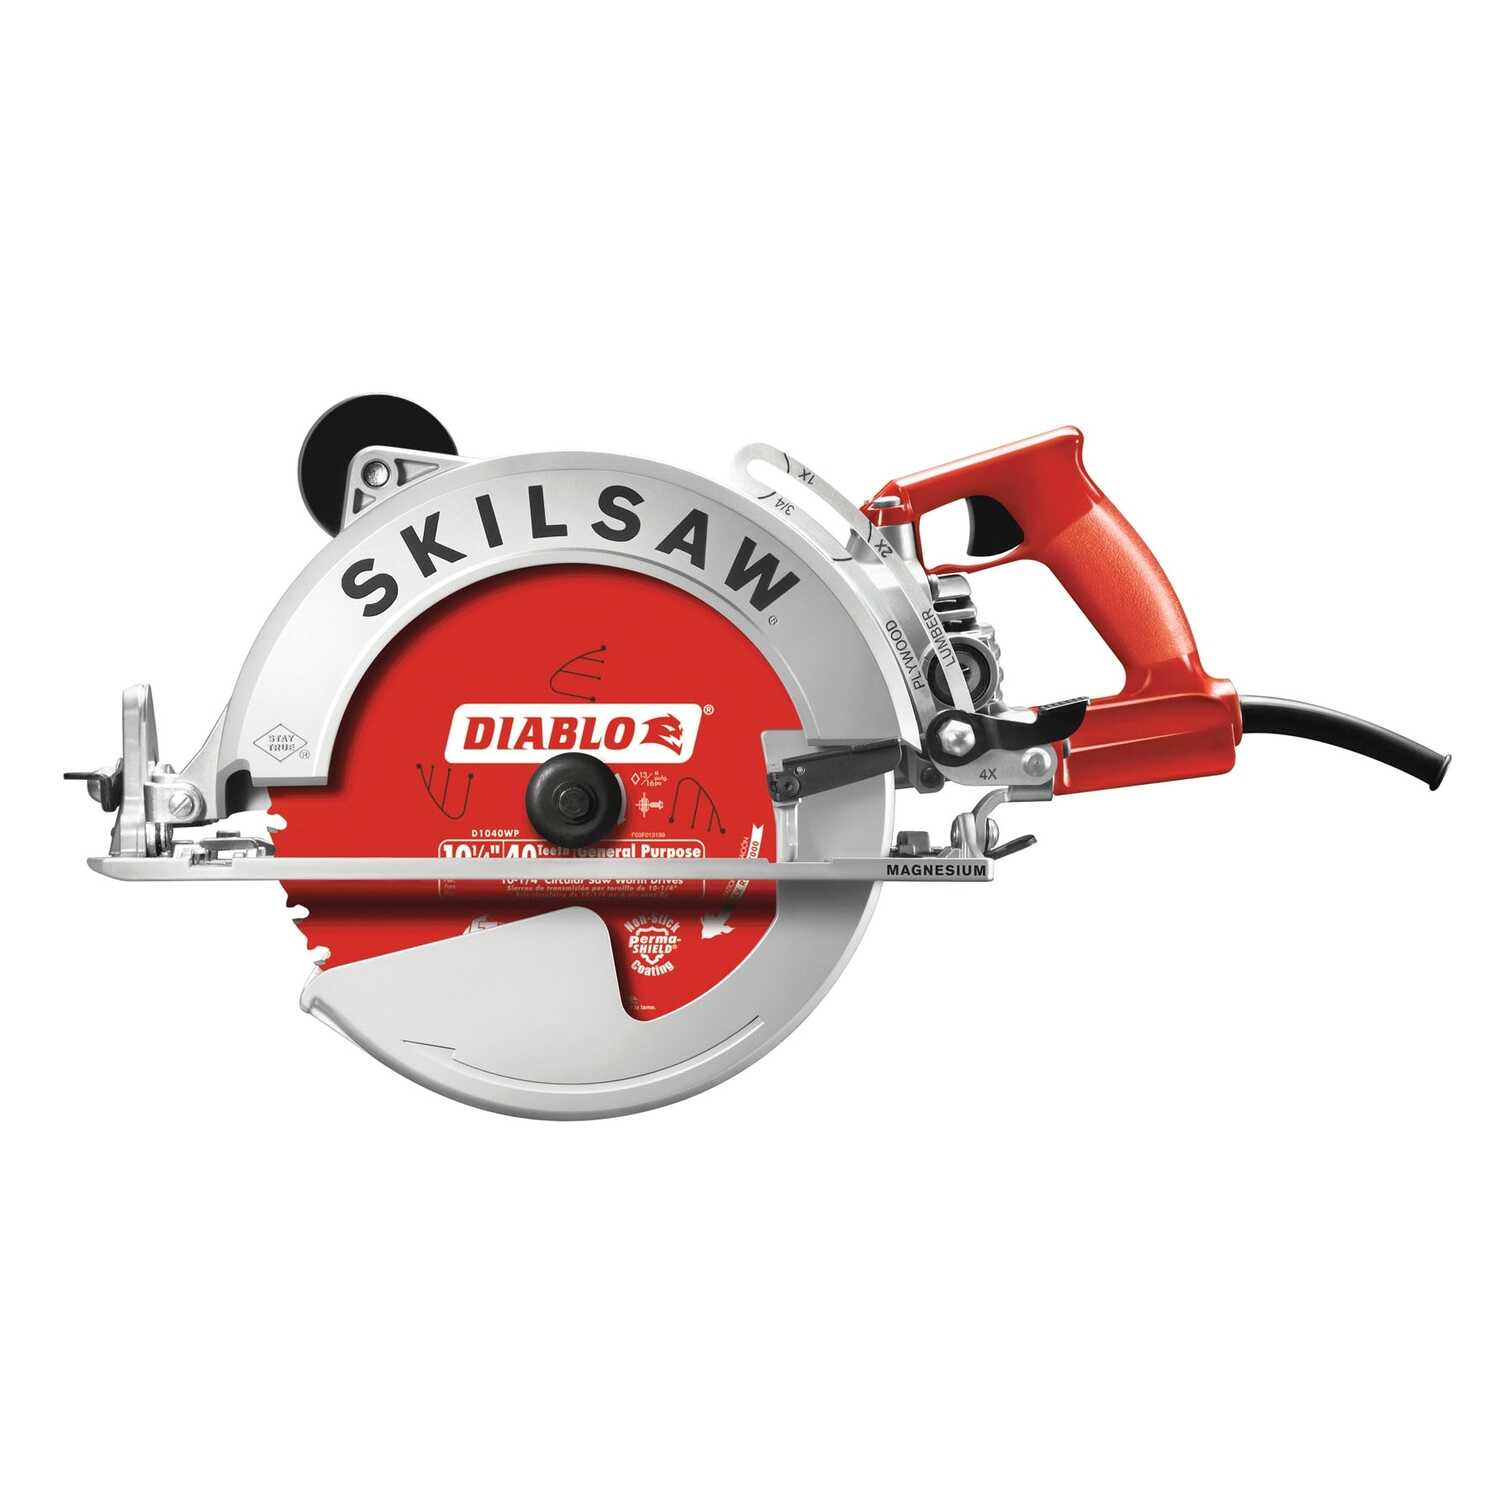 SKILSAW  Sawsquatch  7-1/4 in. 15 amps Corded  Worm Drive Circular Saw  120 volt 5300 rpm